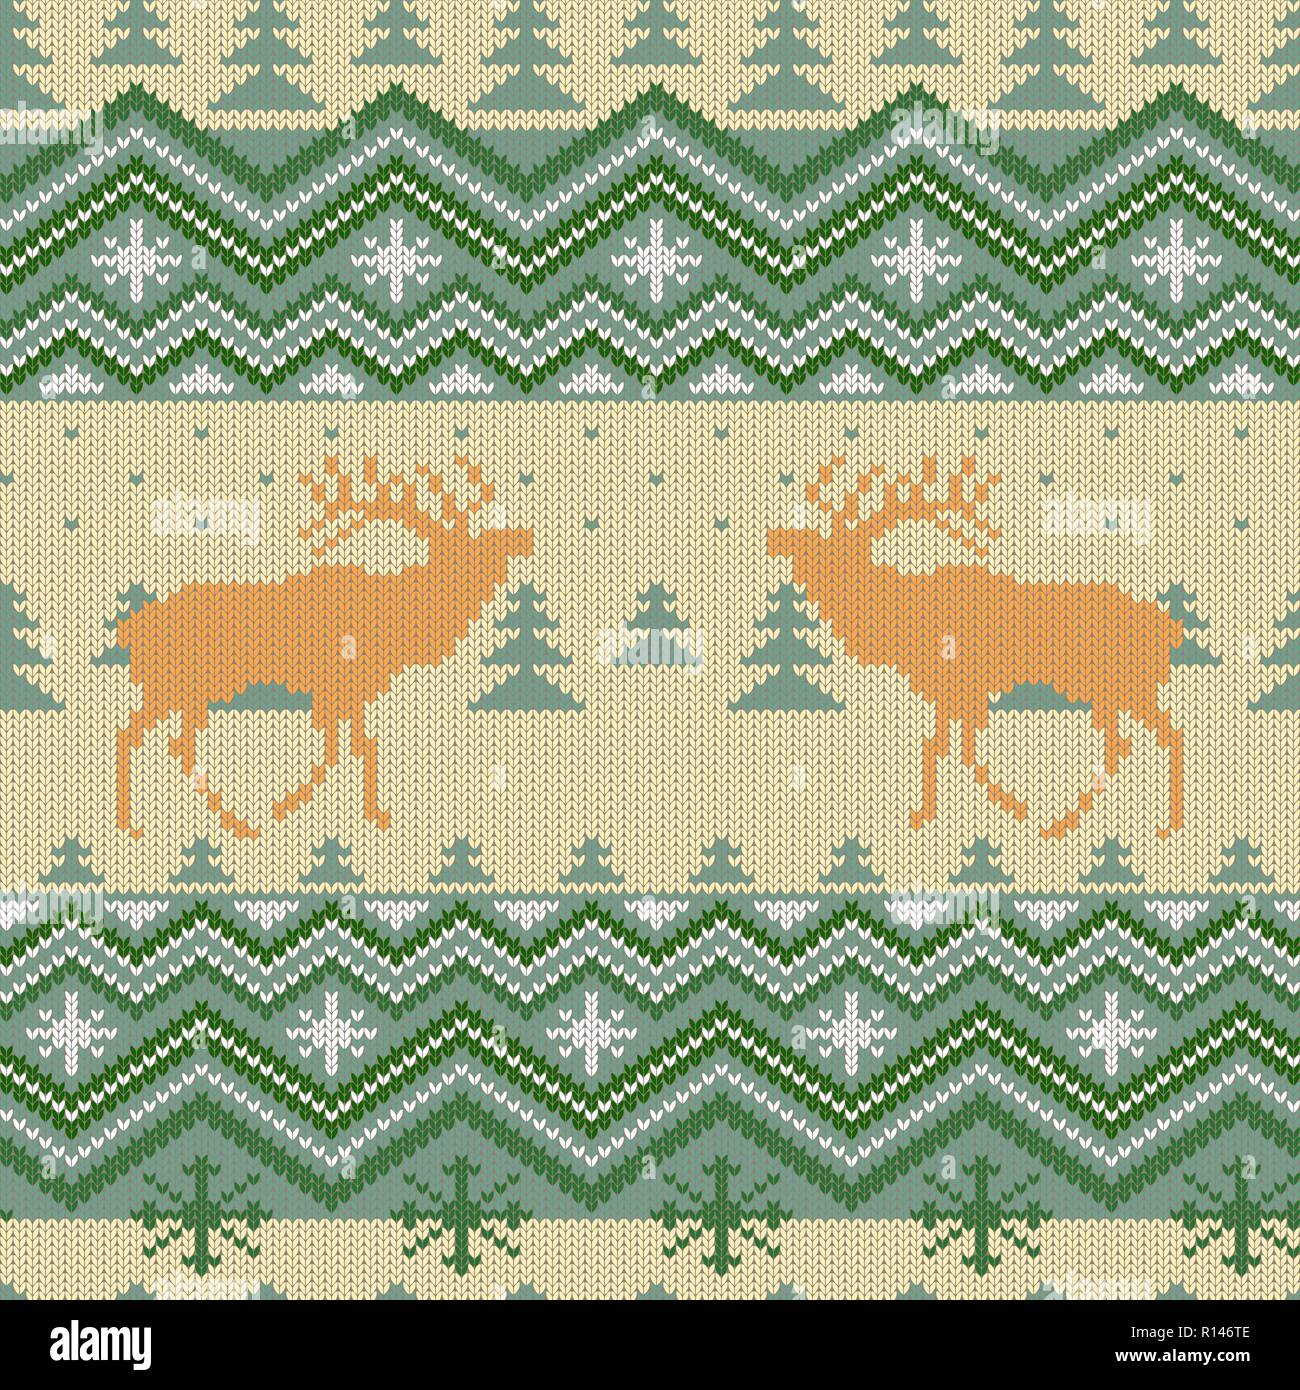 Christmas knitted woolen seamless pattern with red deer in conifer forest - Stock Vector